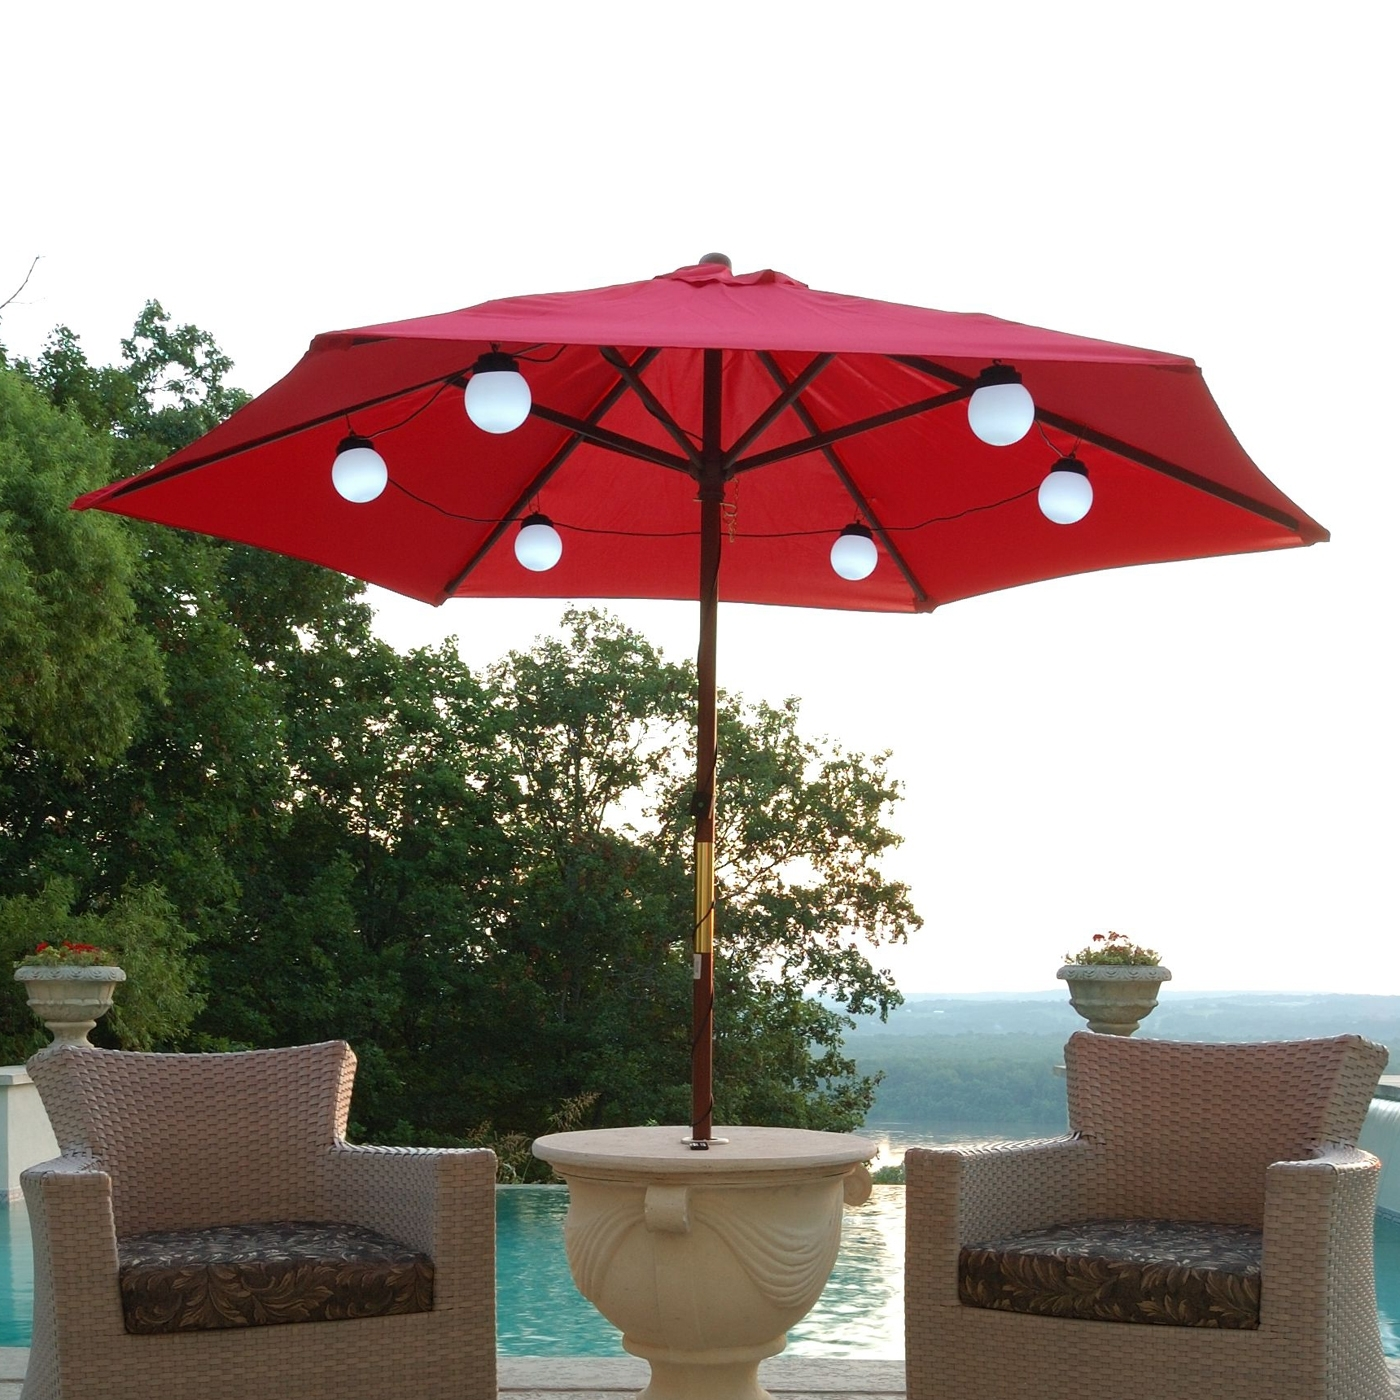 Latest Patio Living Concepts 080 Bright White Led Solar Powered Umbrella Intended For Red Outdoor Table Lanterns (View 5 of 20)